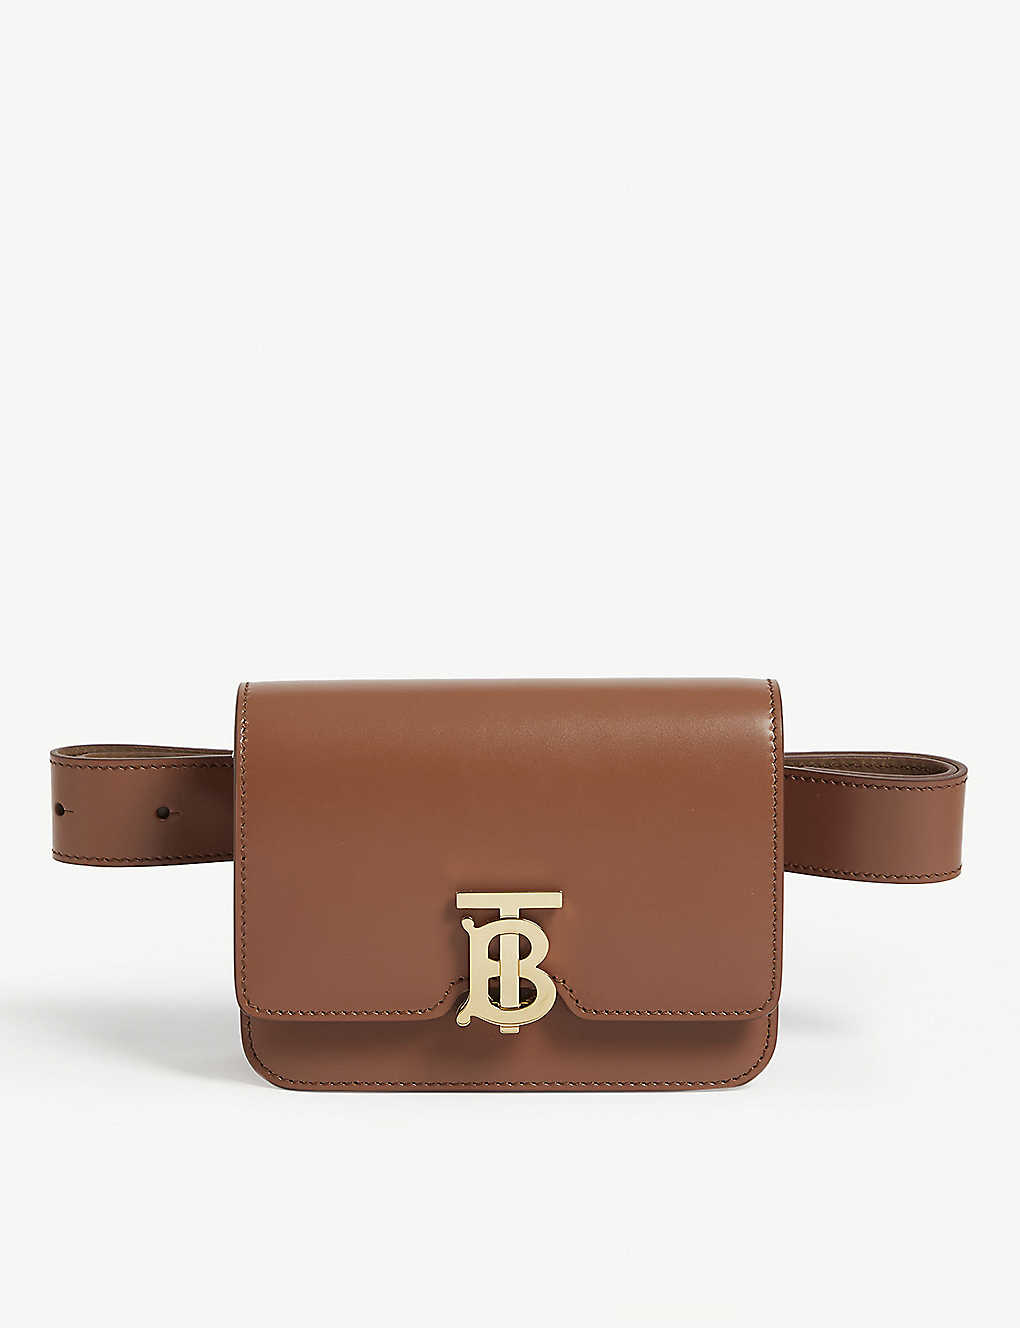 BURBERRY: TB logo leather belt bag